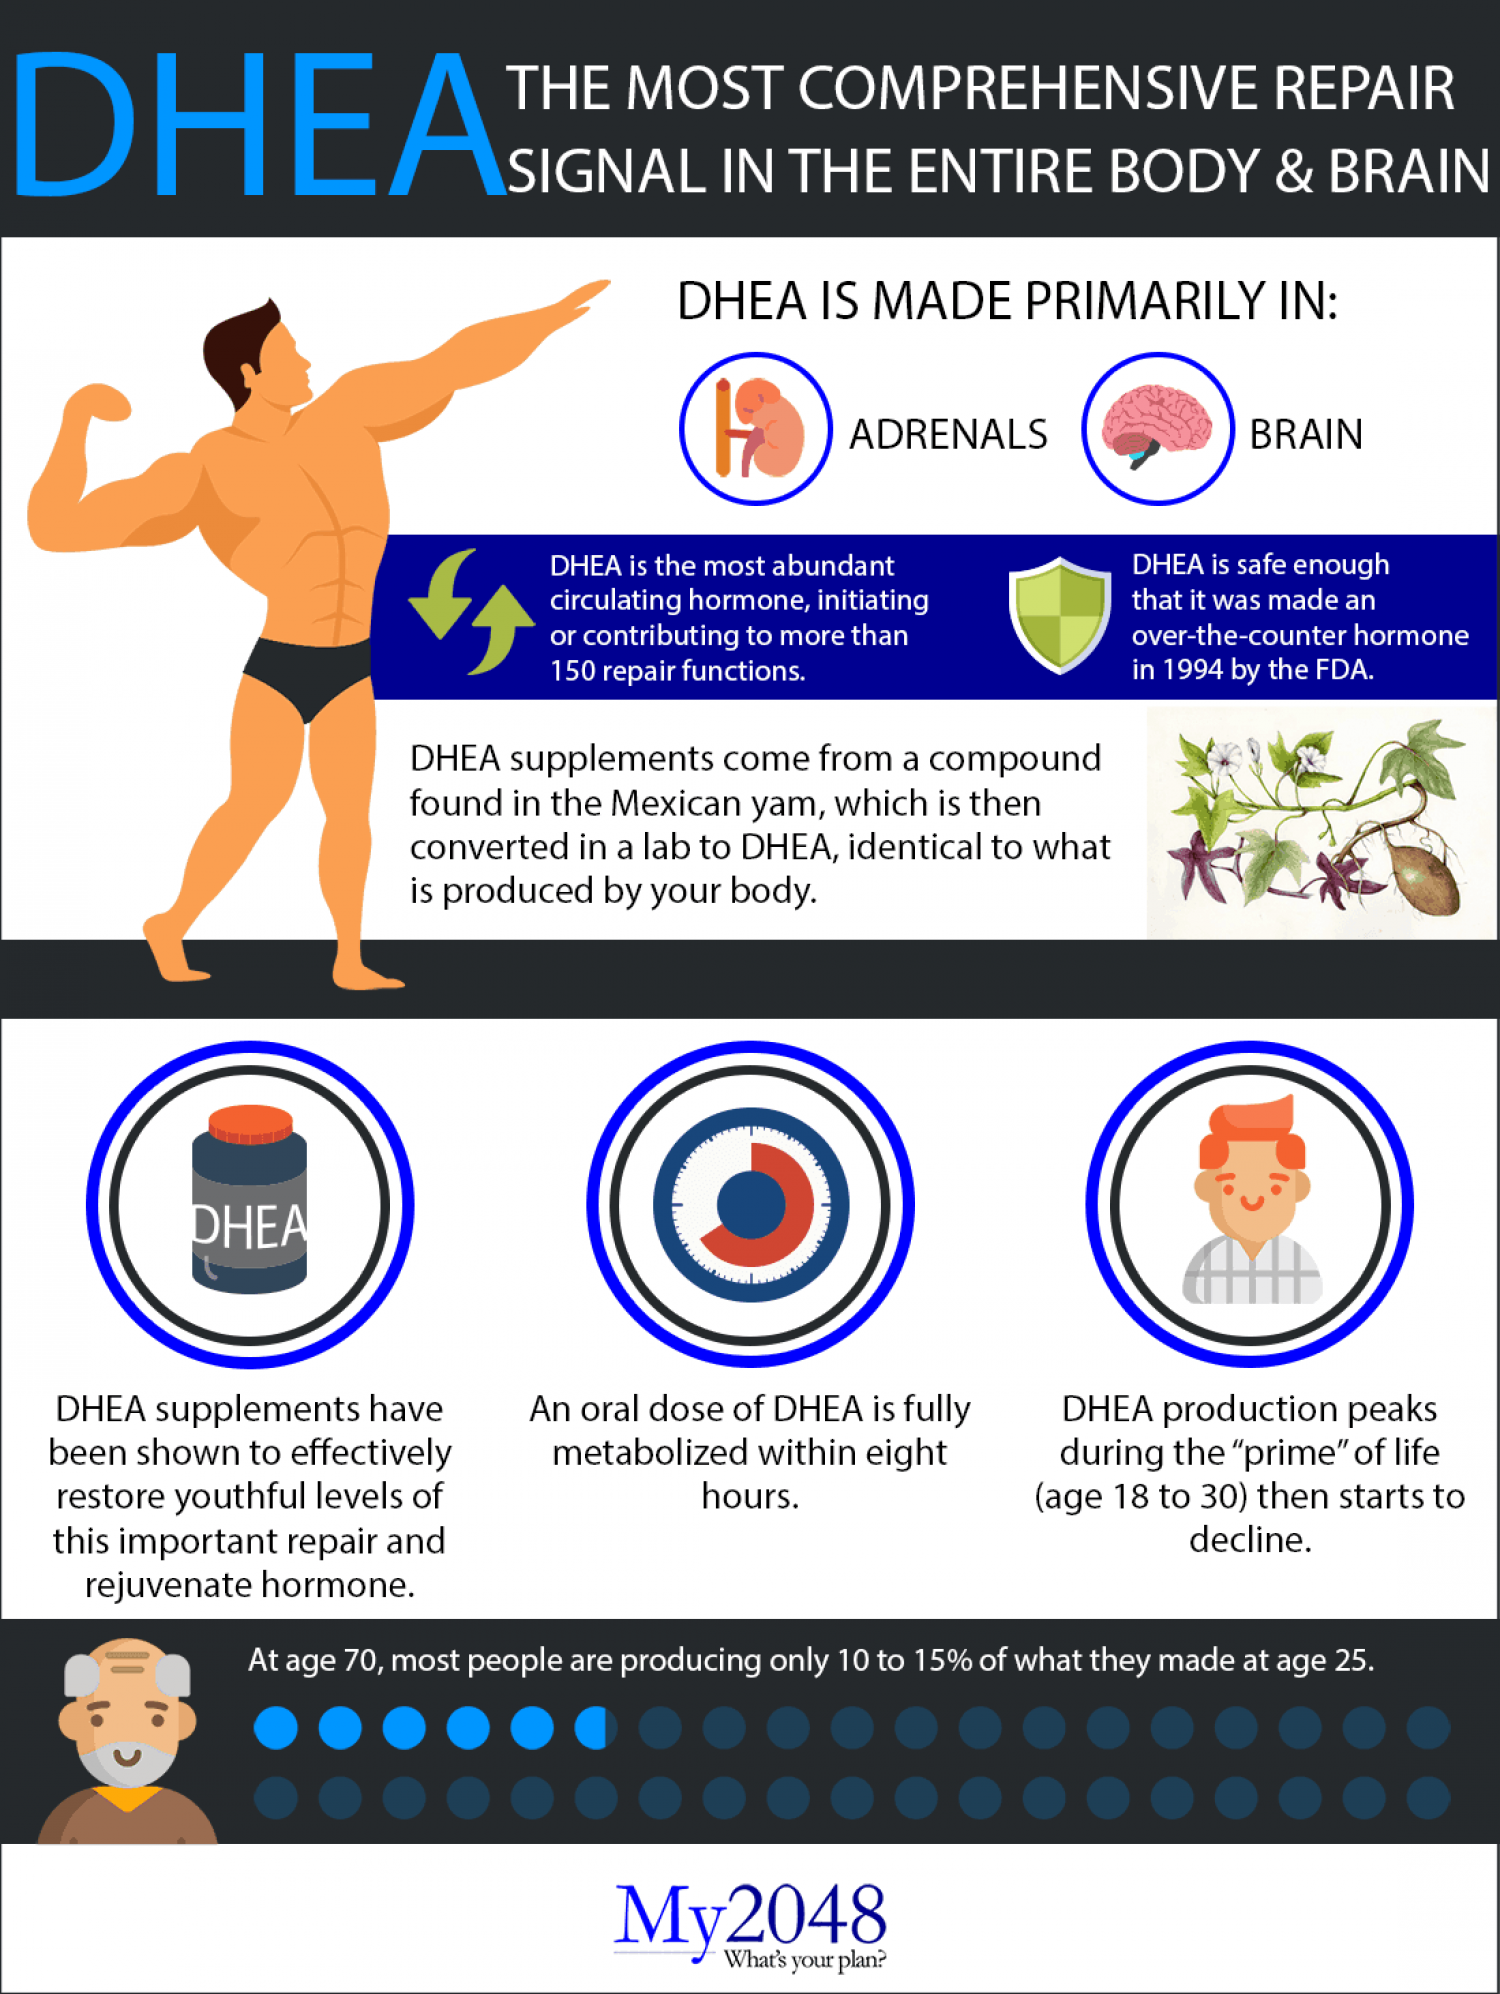 DHEA: The most comprehensive repair signal in the entire body and brain Infographic